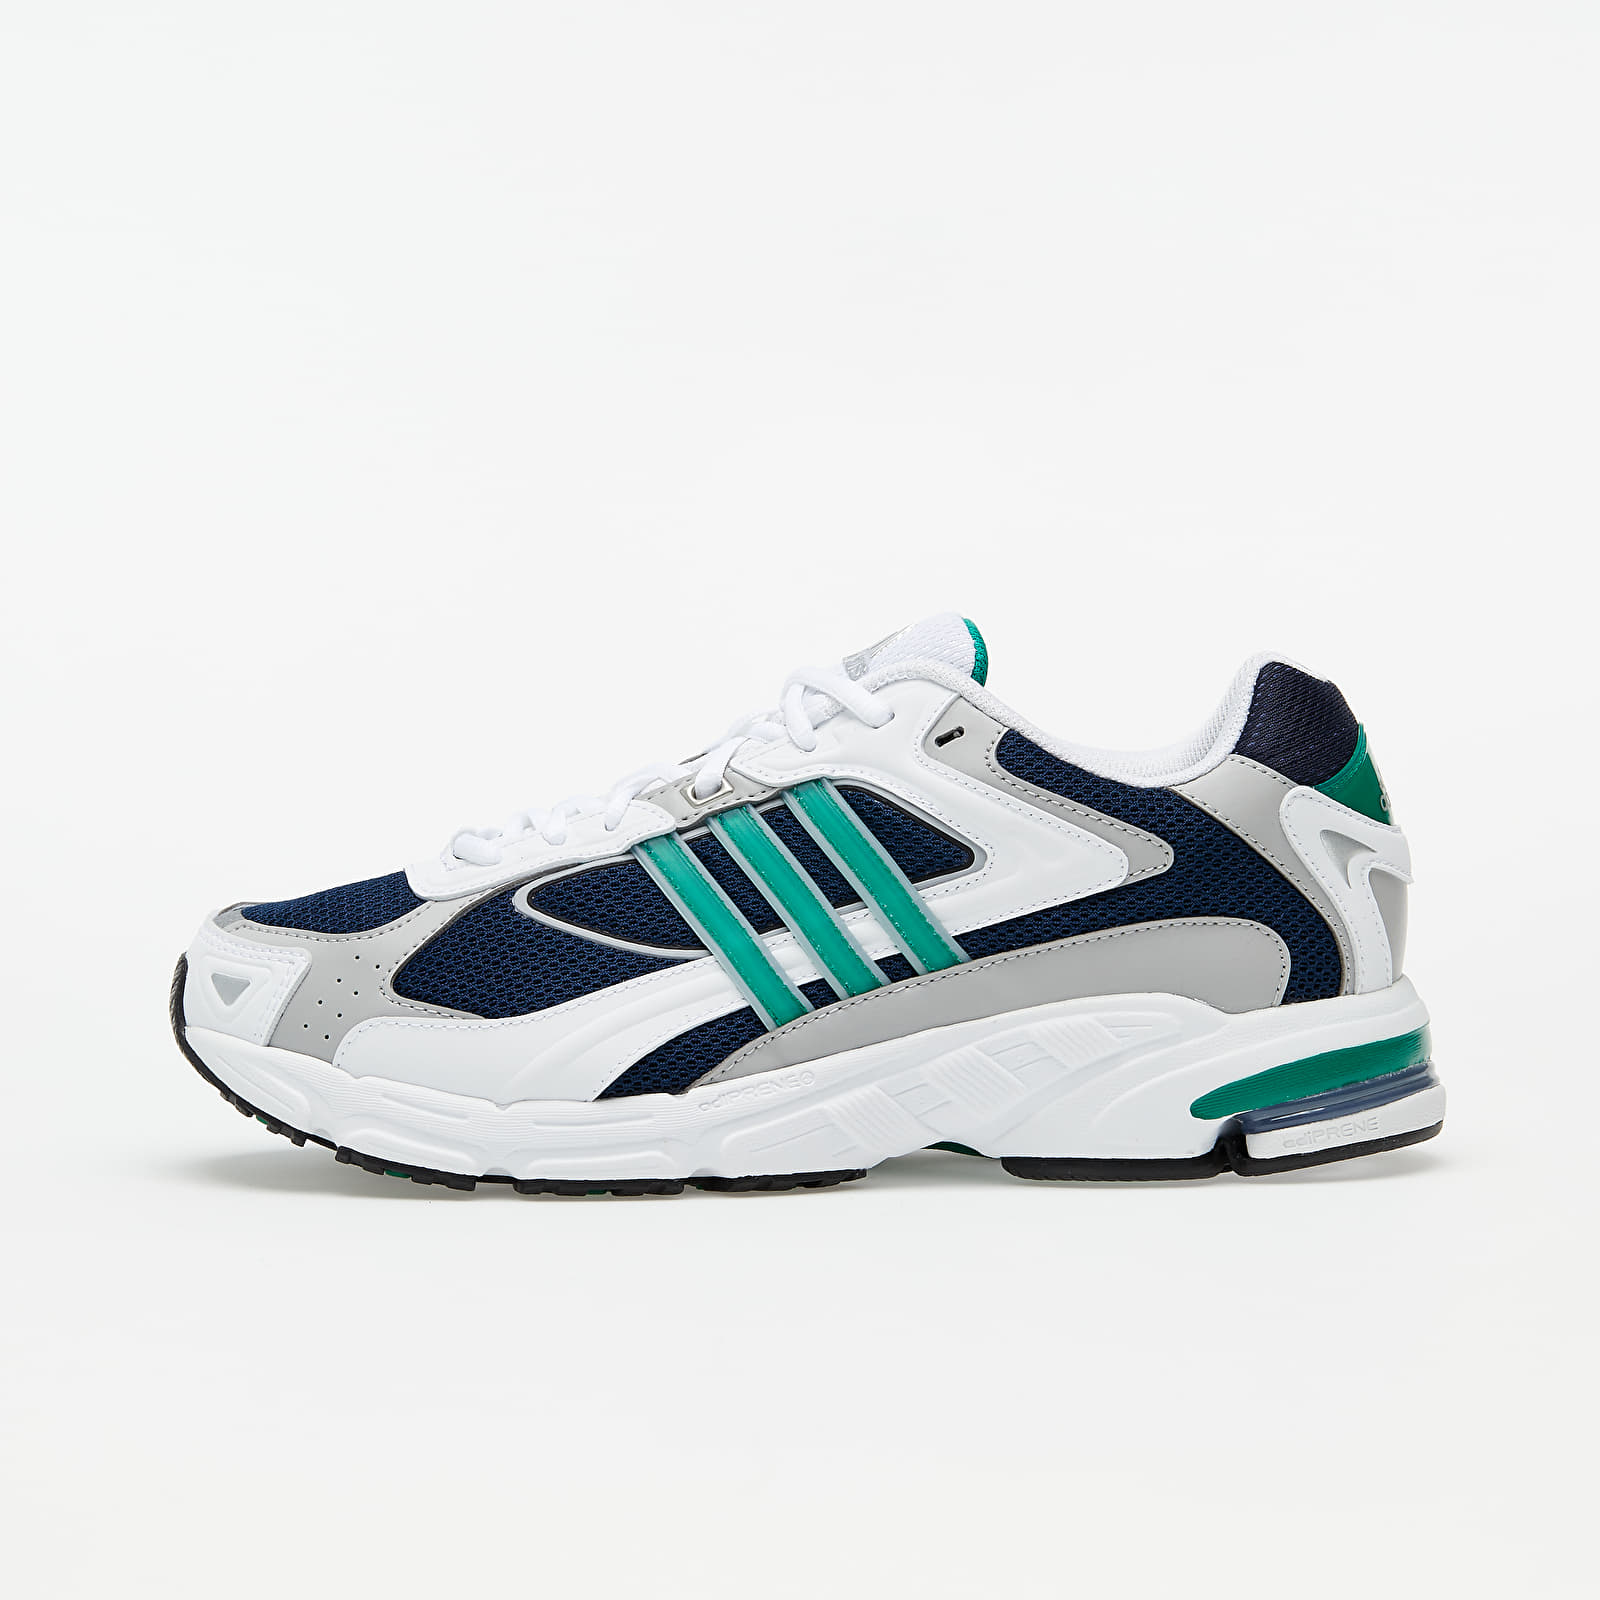 Chaussures et baskets homme adidas Response CL Collegiate Navy/ Supplier Colour/ Grey Two